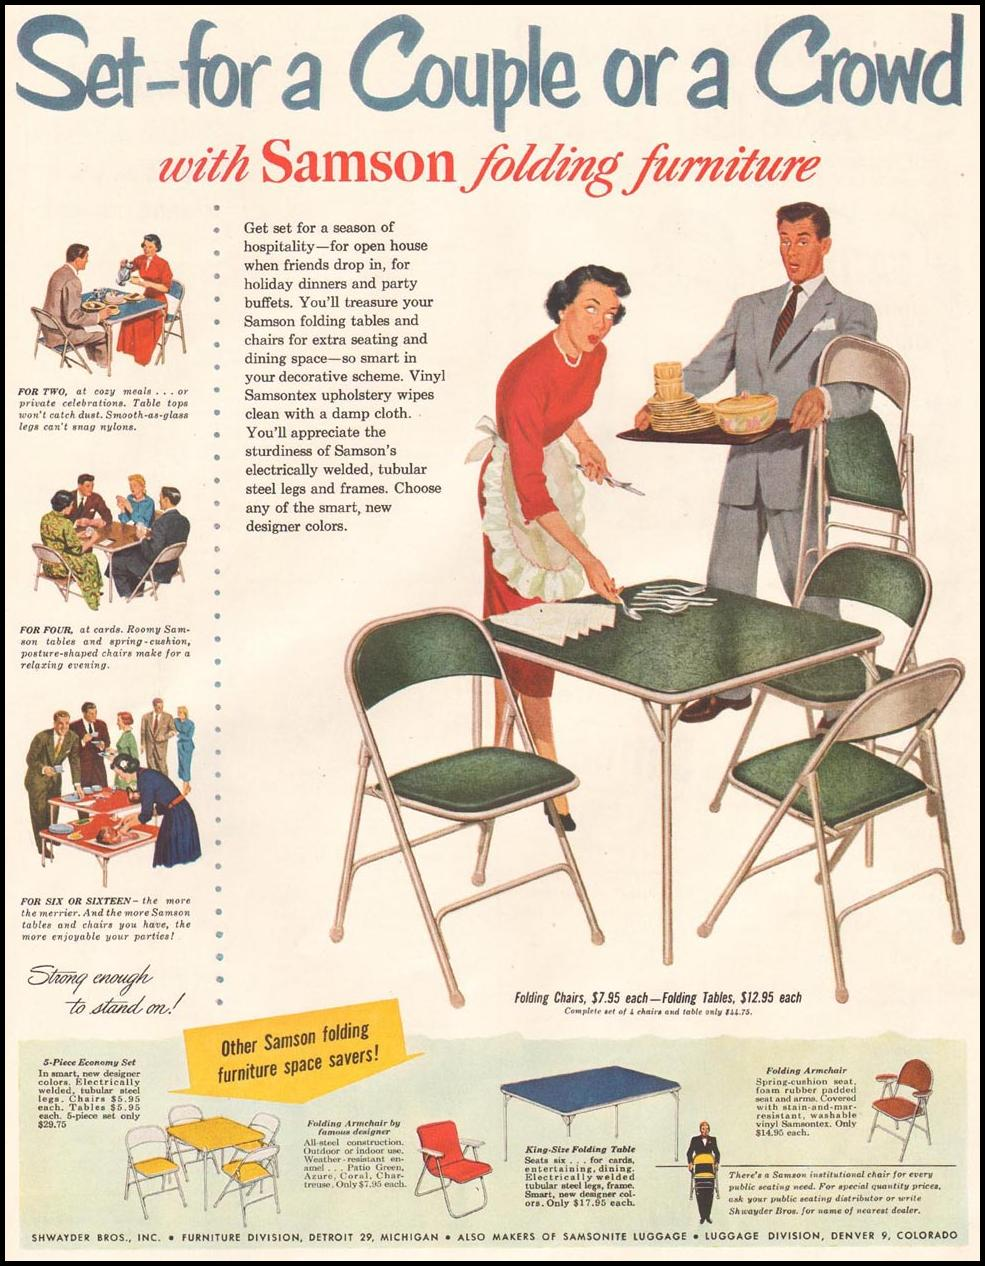 SAMSON FOLDING FURNITURE LADIES' HOME JOURNAL 11/01/1950 p. 17